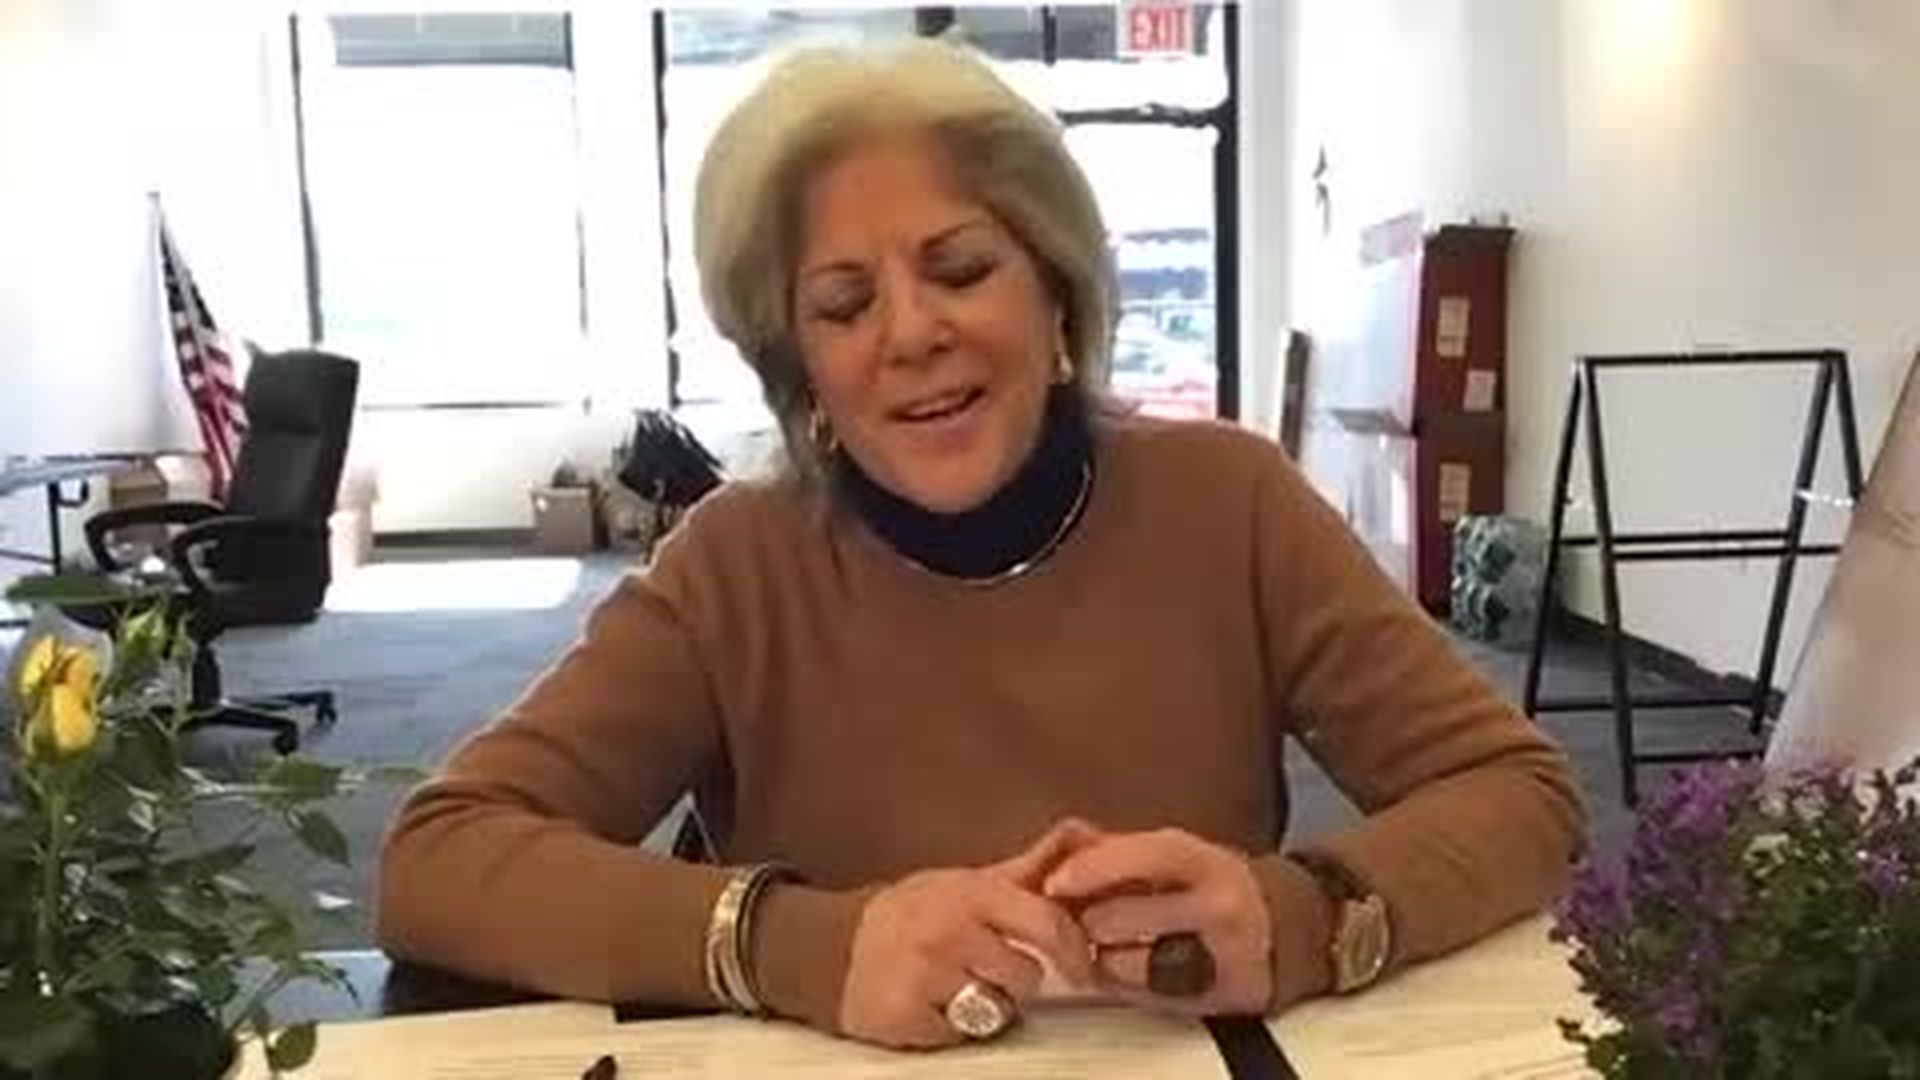 Vickie Paladino | Republican Candidate of New York City Council District 19